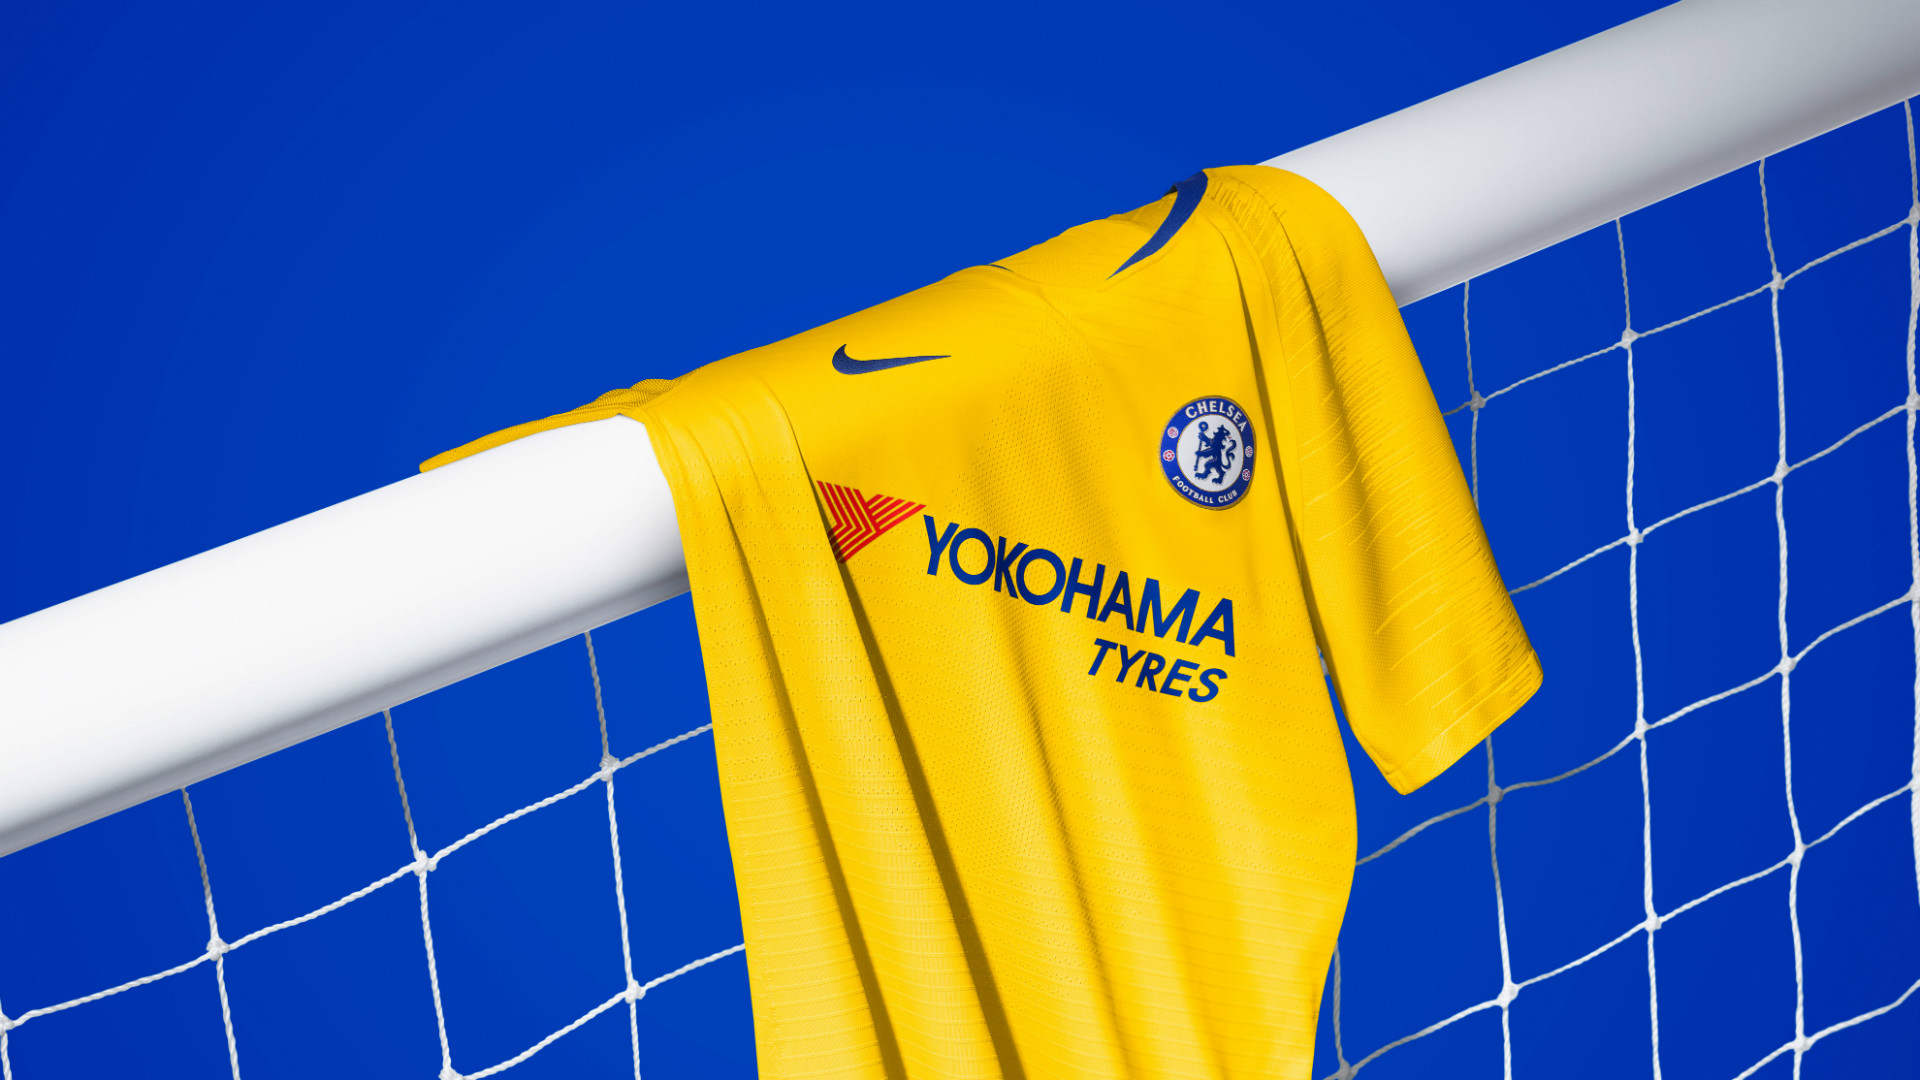 e47530e61 Chelsea news  Blues unveil yellow away kit for 2018-19 season